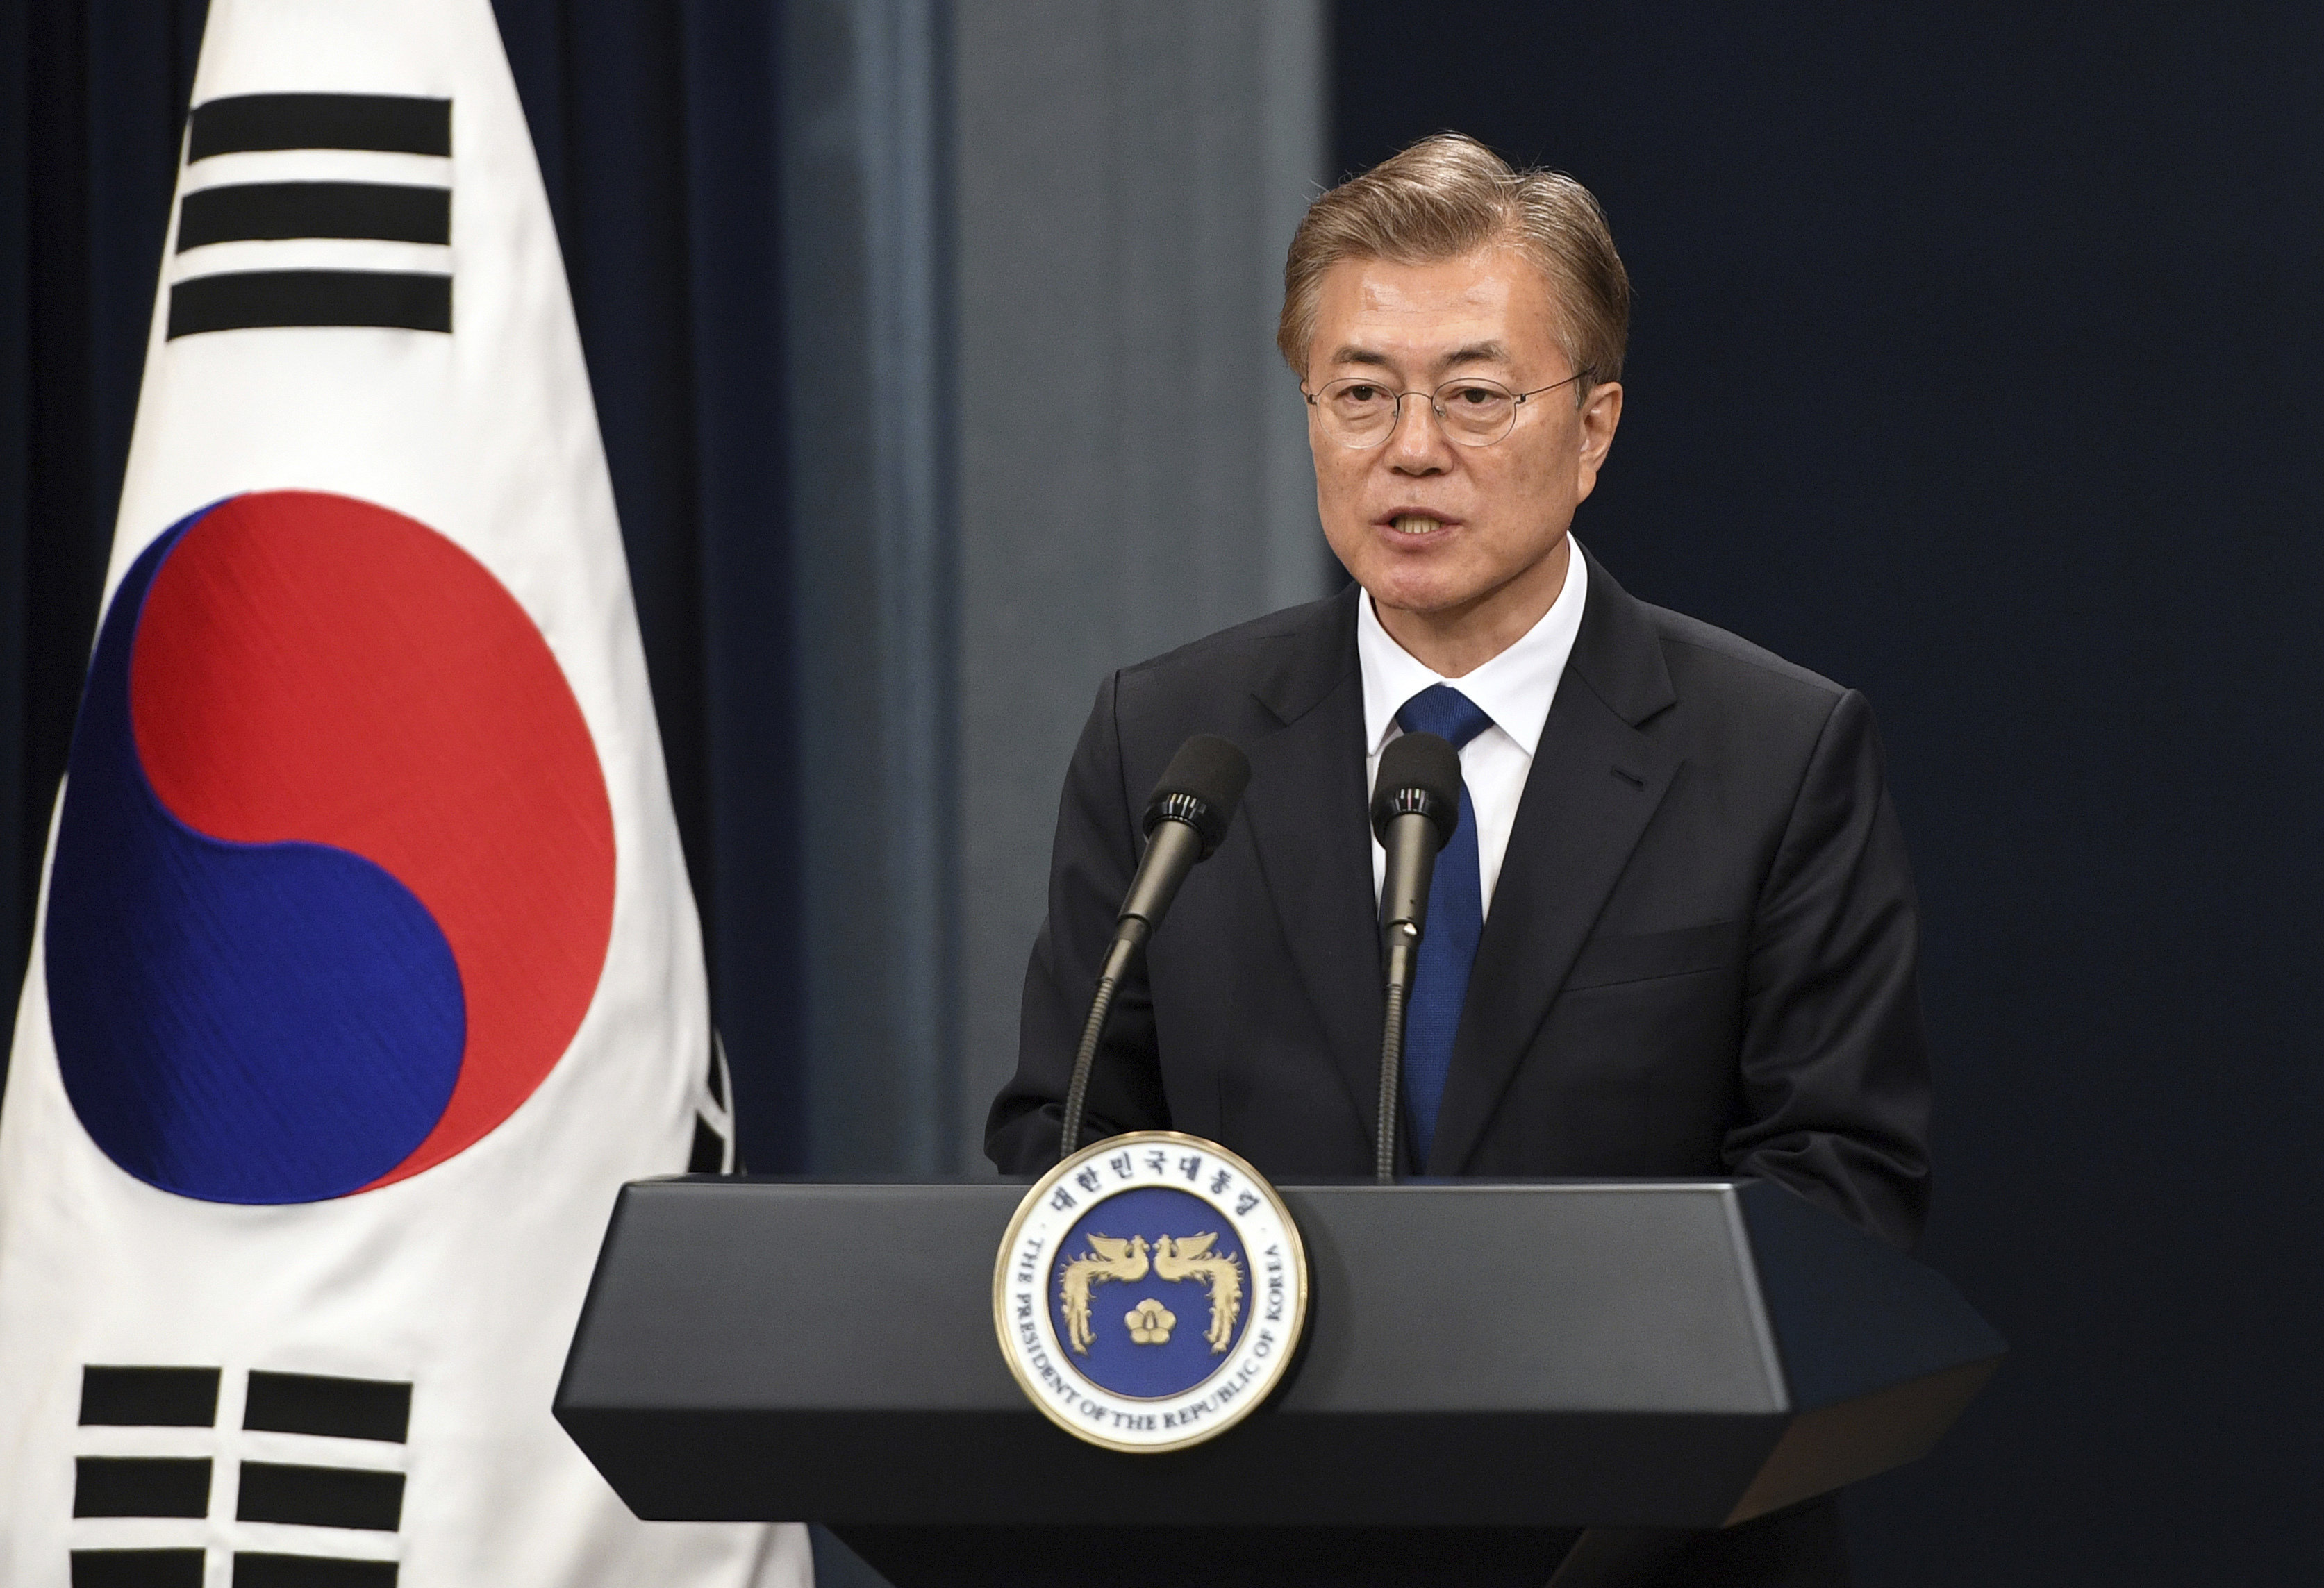 South Korea's new President Moon Jae-In speaks during a press conference at the presidential Blue House in Seoul Wednesday, May 10, 2017